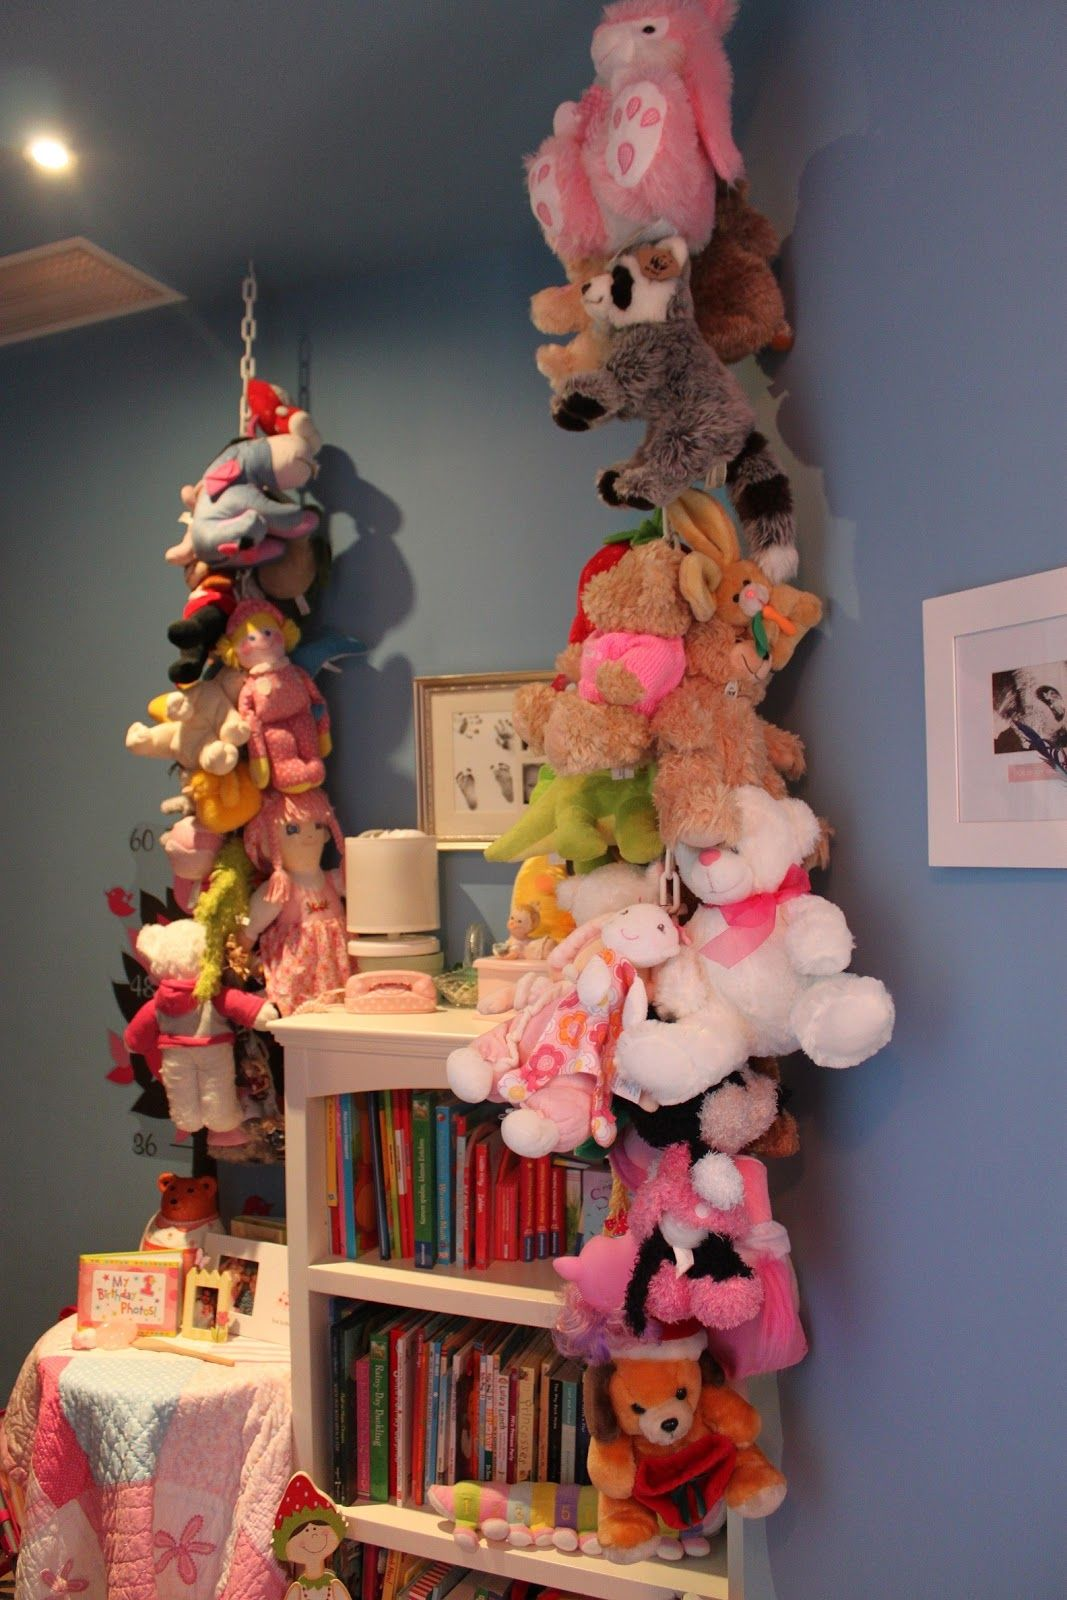 How To Organize Stuffed Animals Mommy In Dubai Thrift